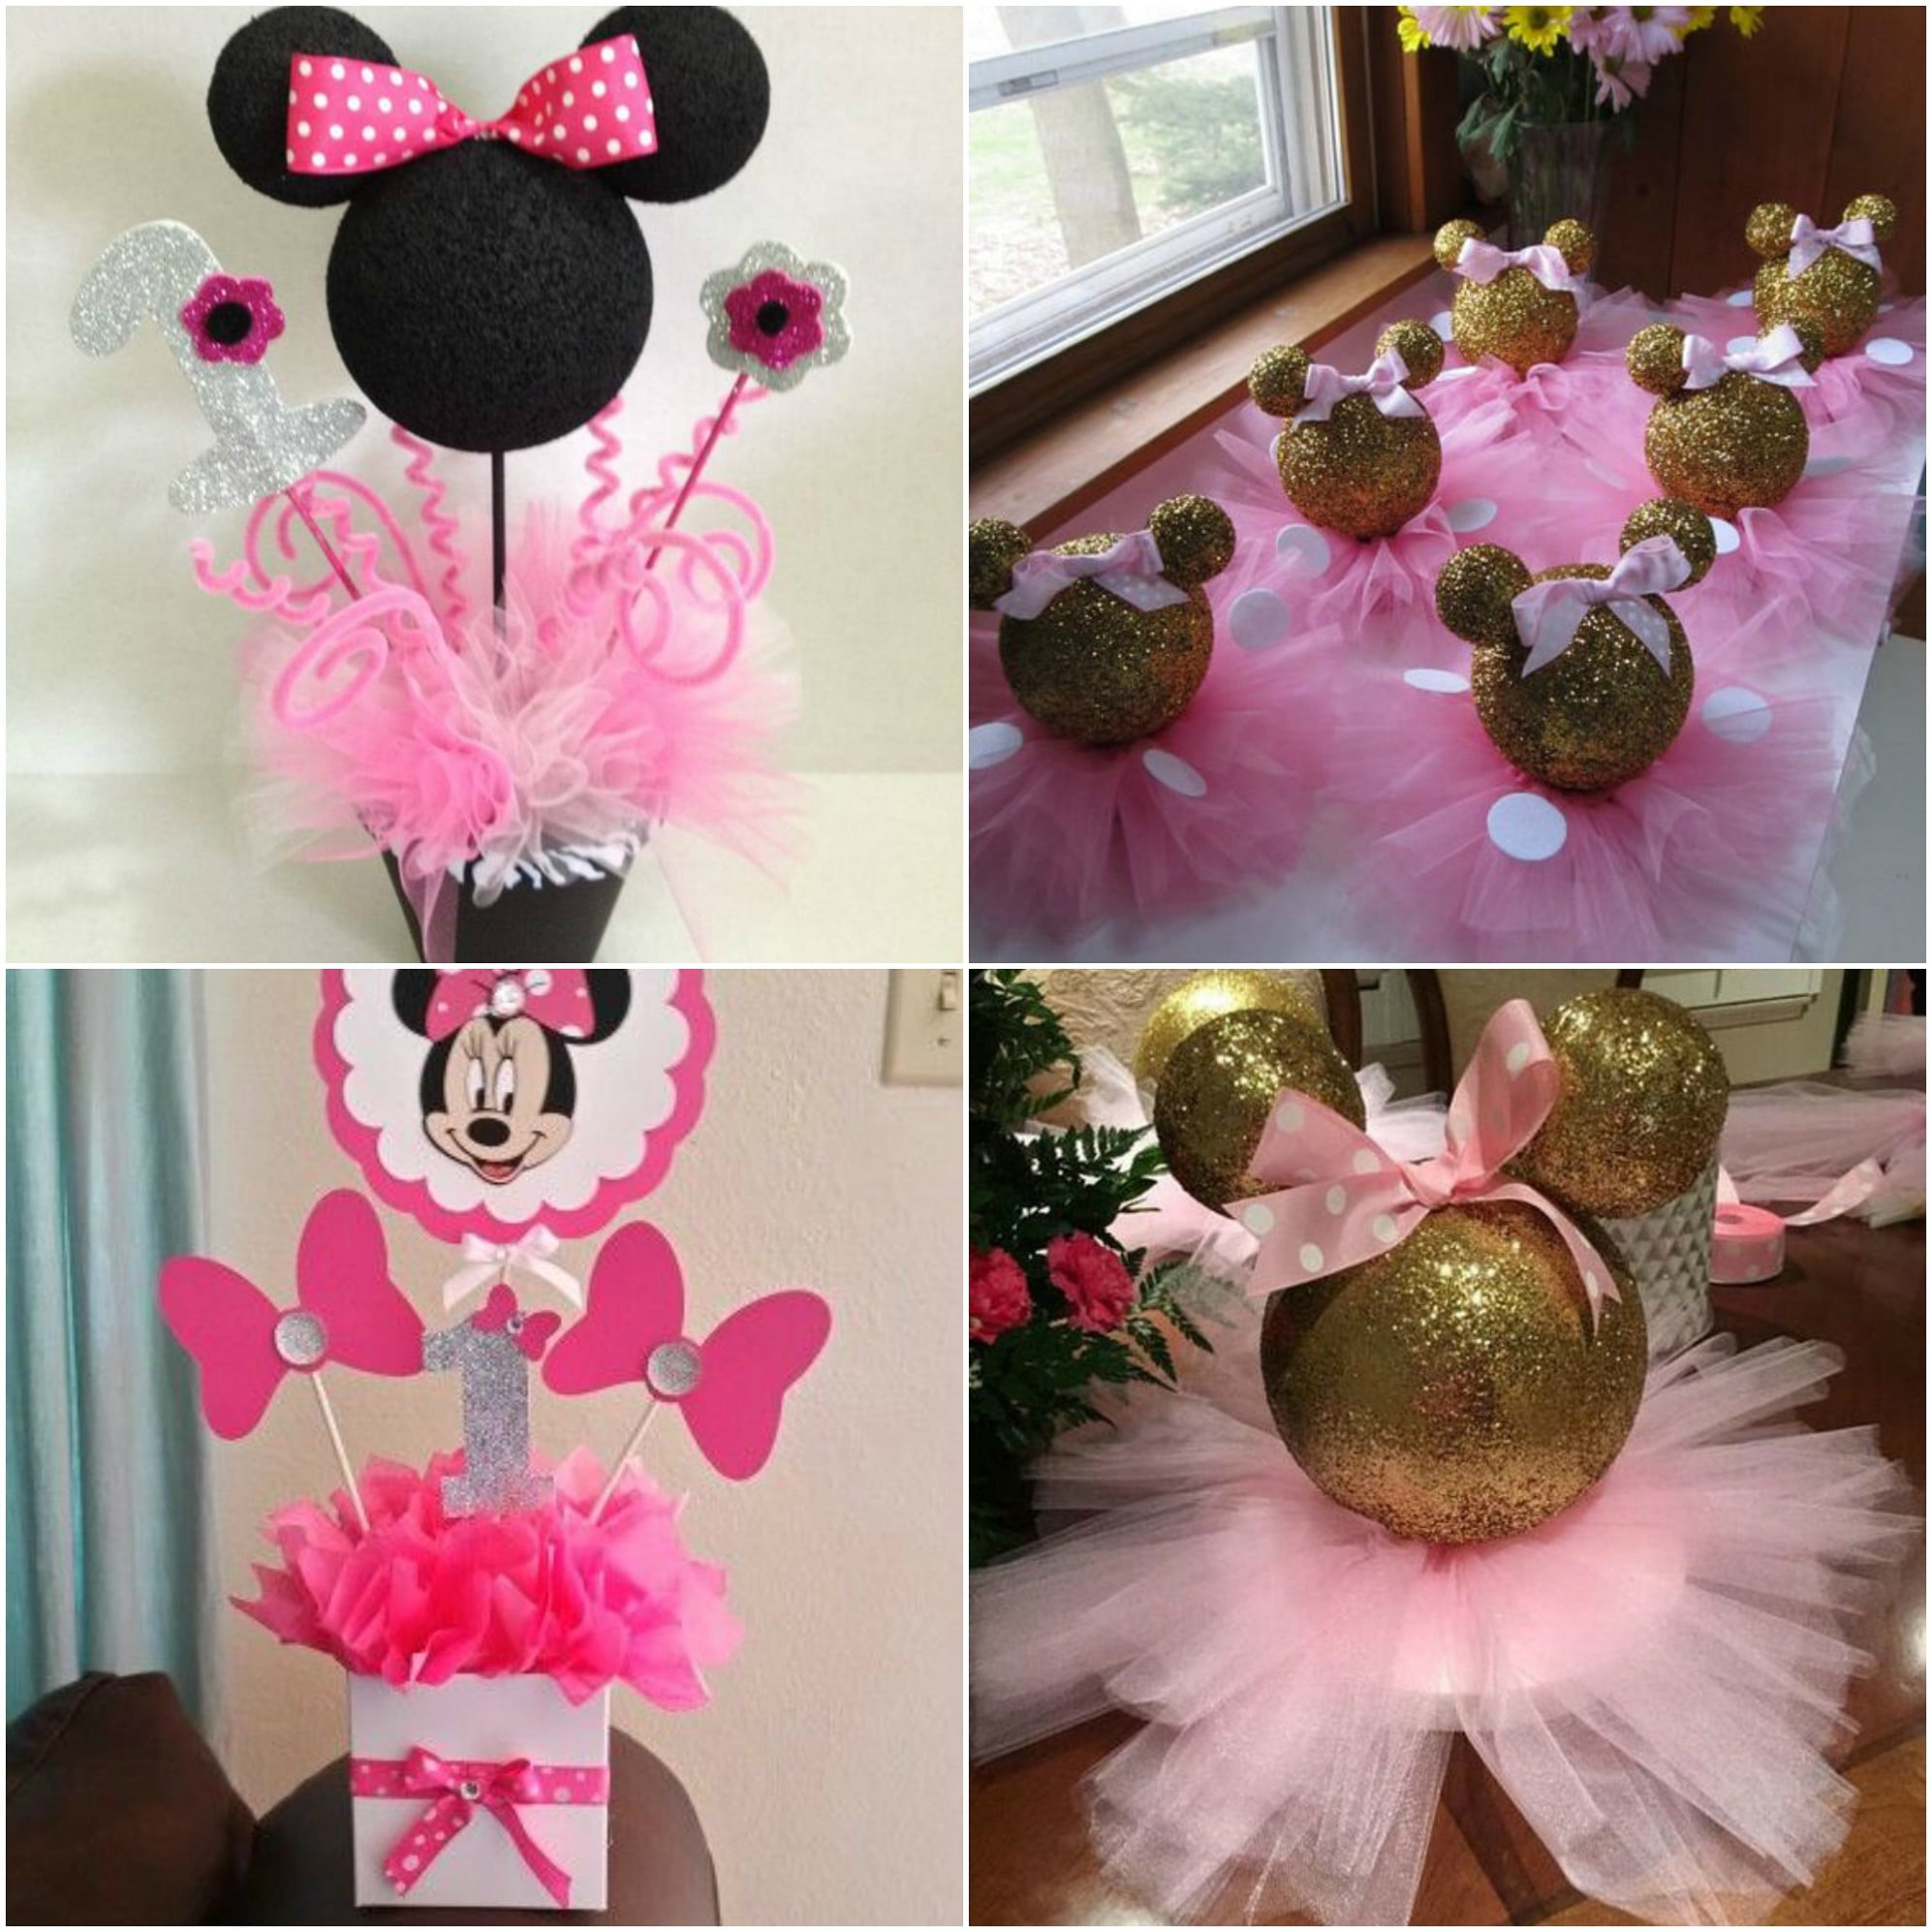 Fiesta de minnie mouse ideas de decoraci n originales 2018 for Ideas faciles decoracion